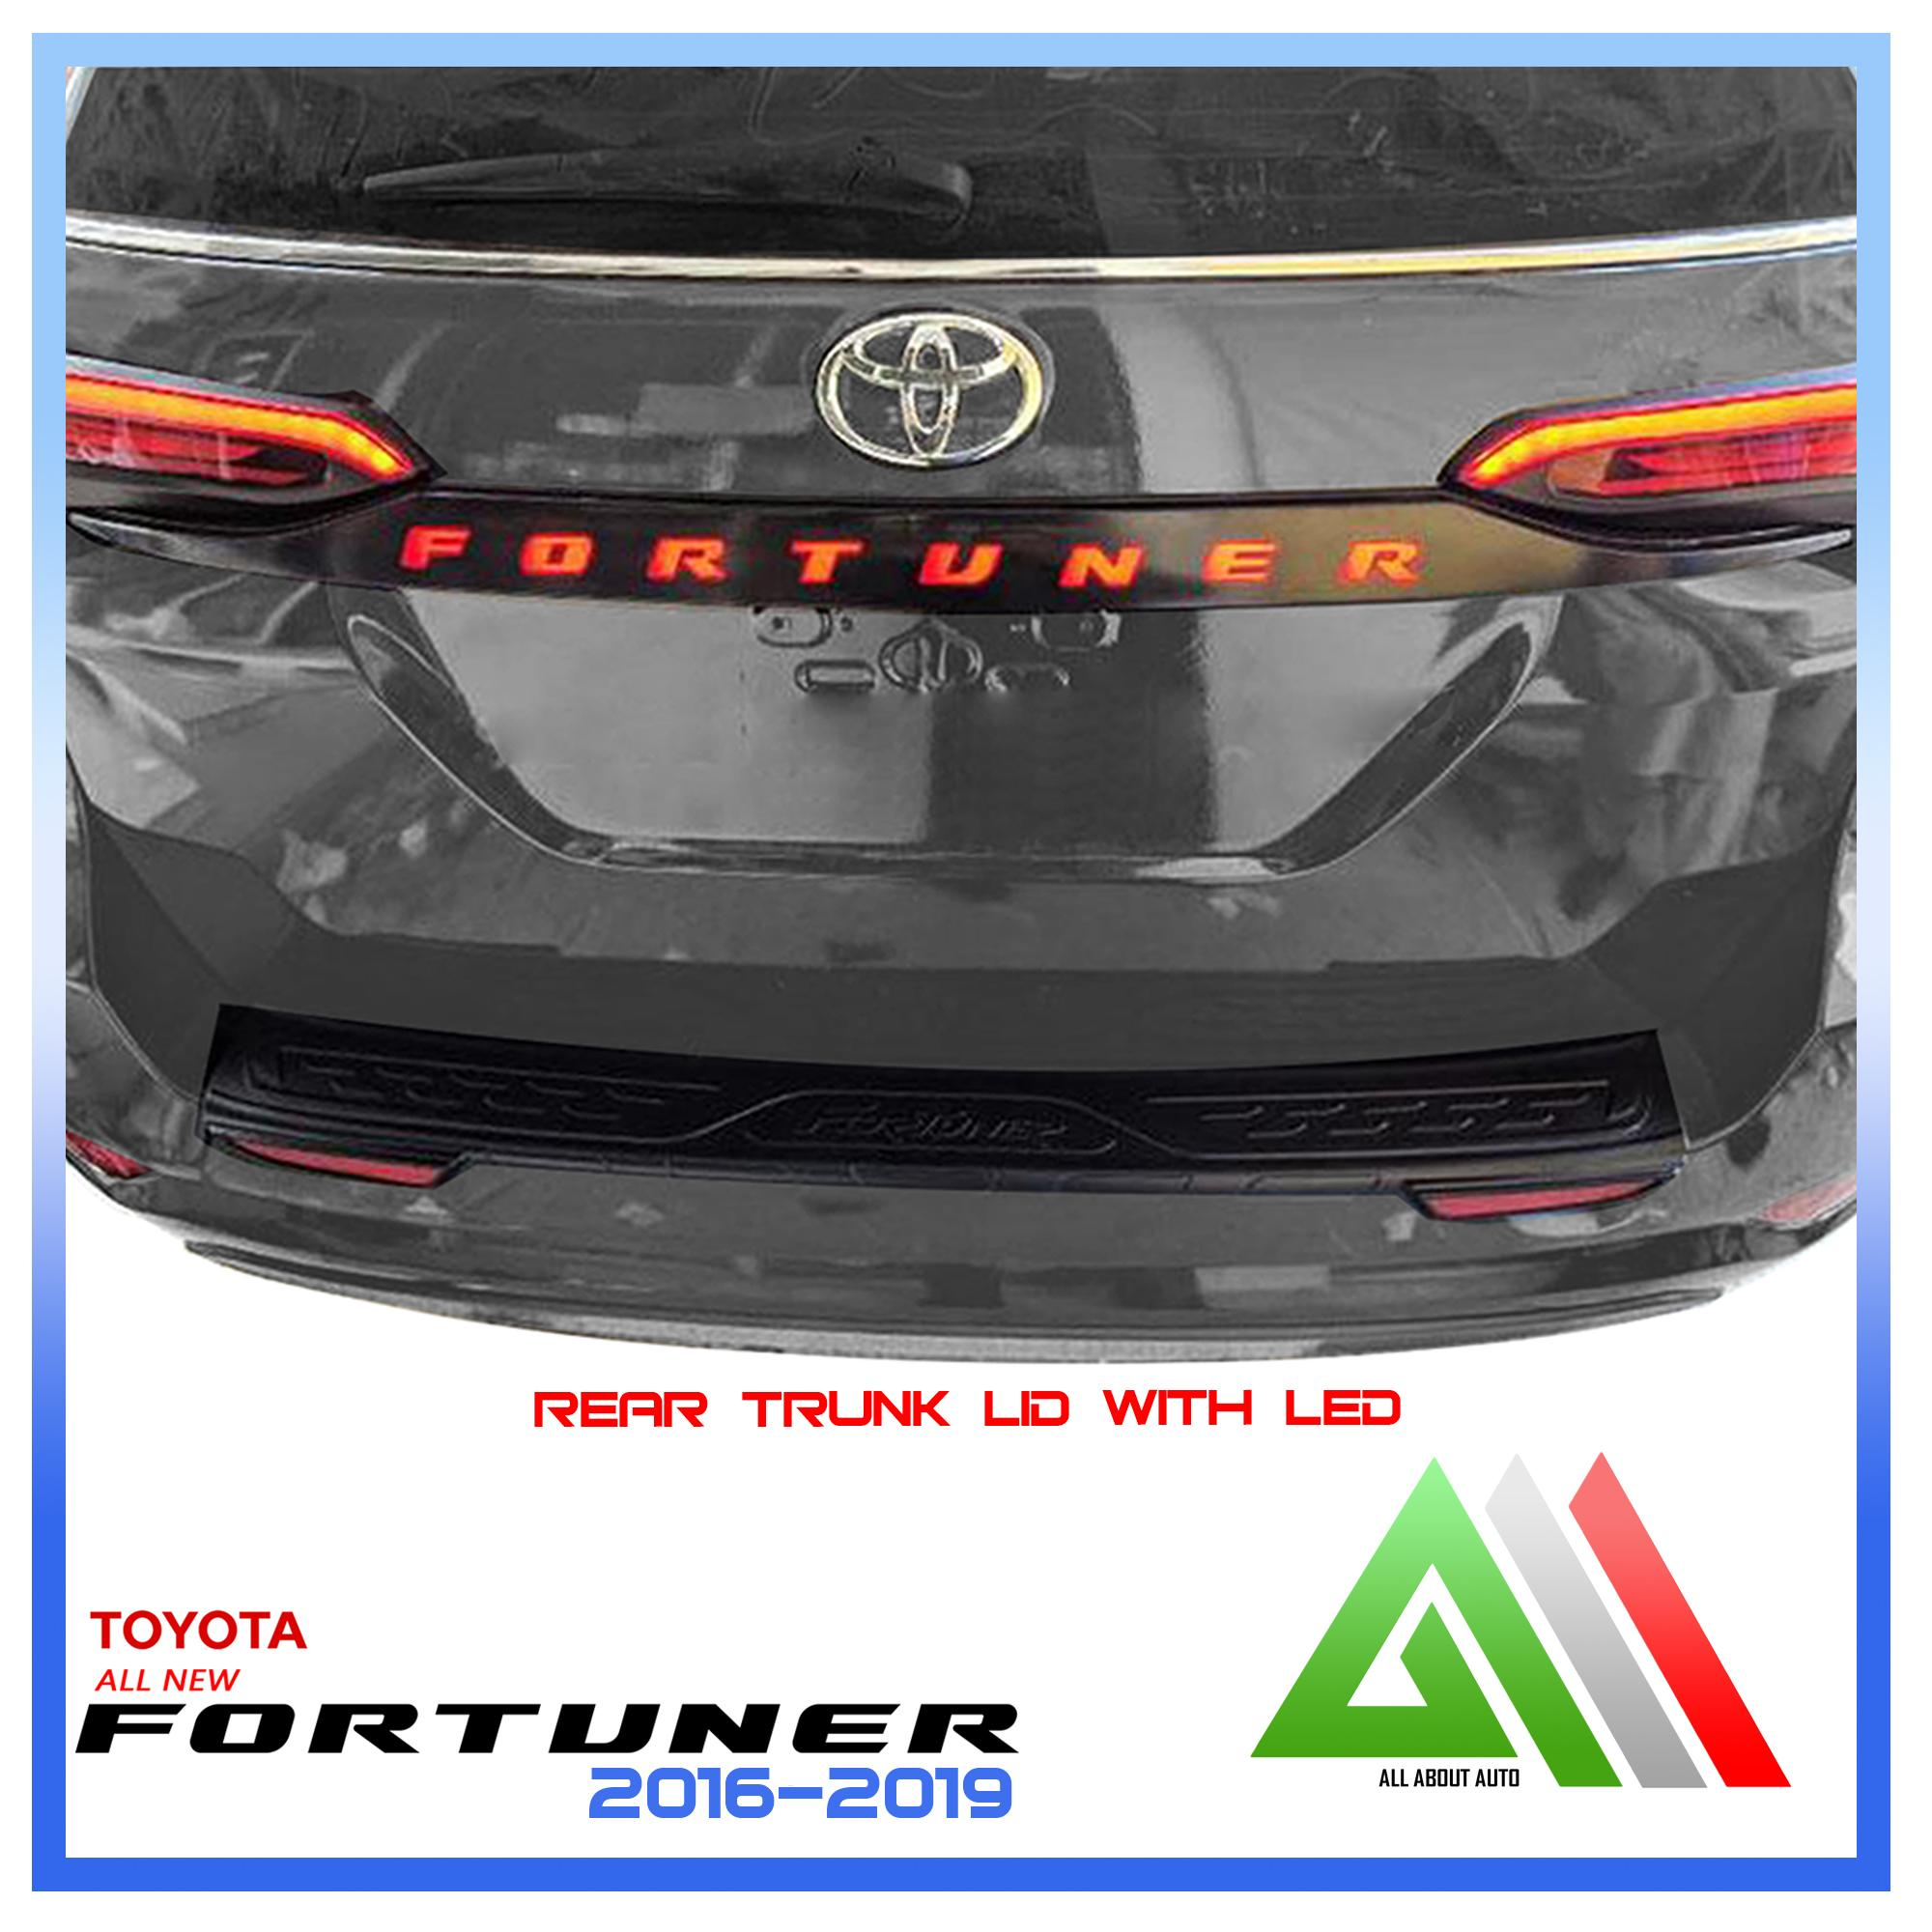 Toyota Fortuner 2019 Rear Trunk Lid with Led Thailand Made